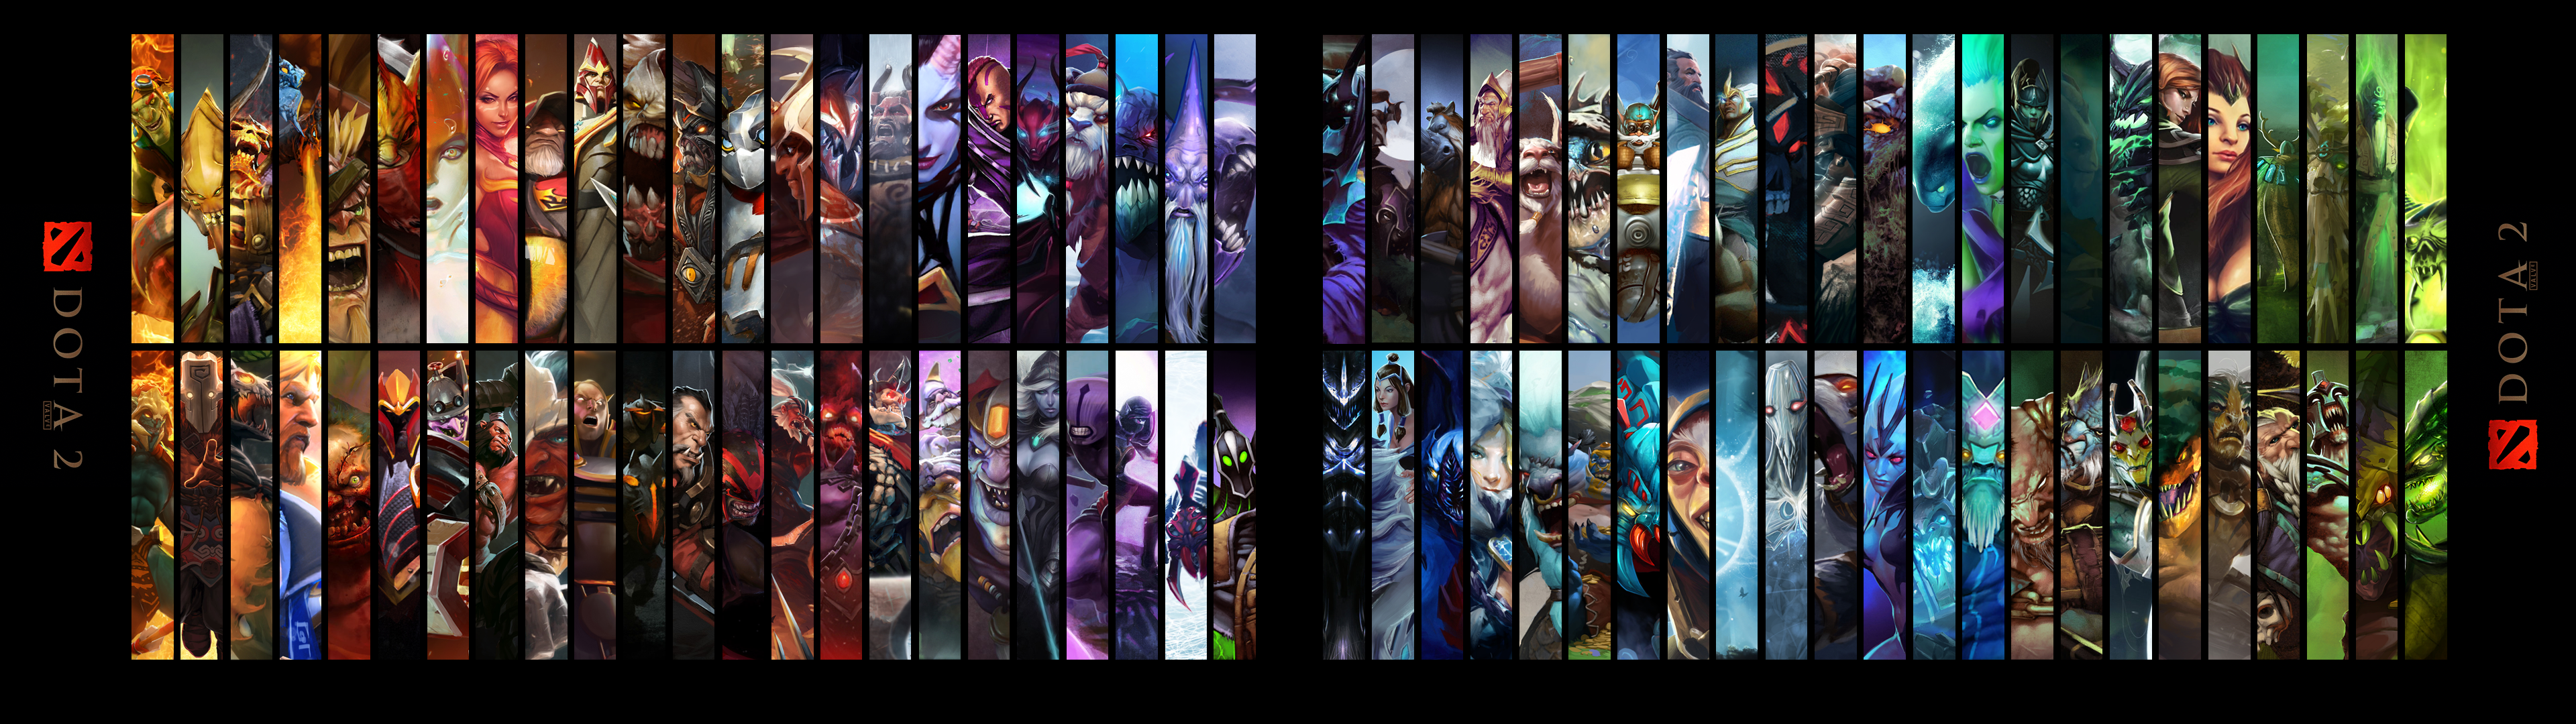 DOTA2 Hero Wallpaper v2 3840x1080 [Dual Monitors] by ImKB ...